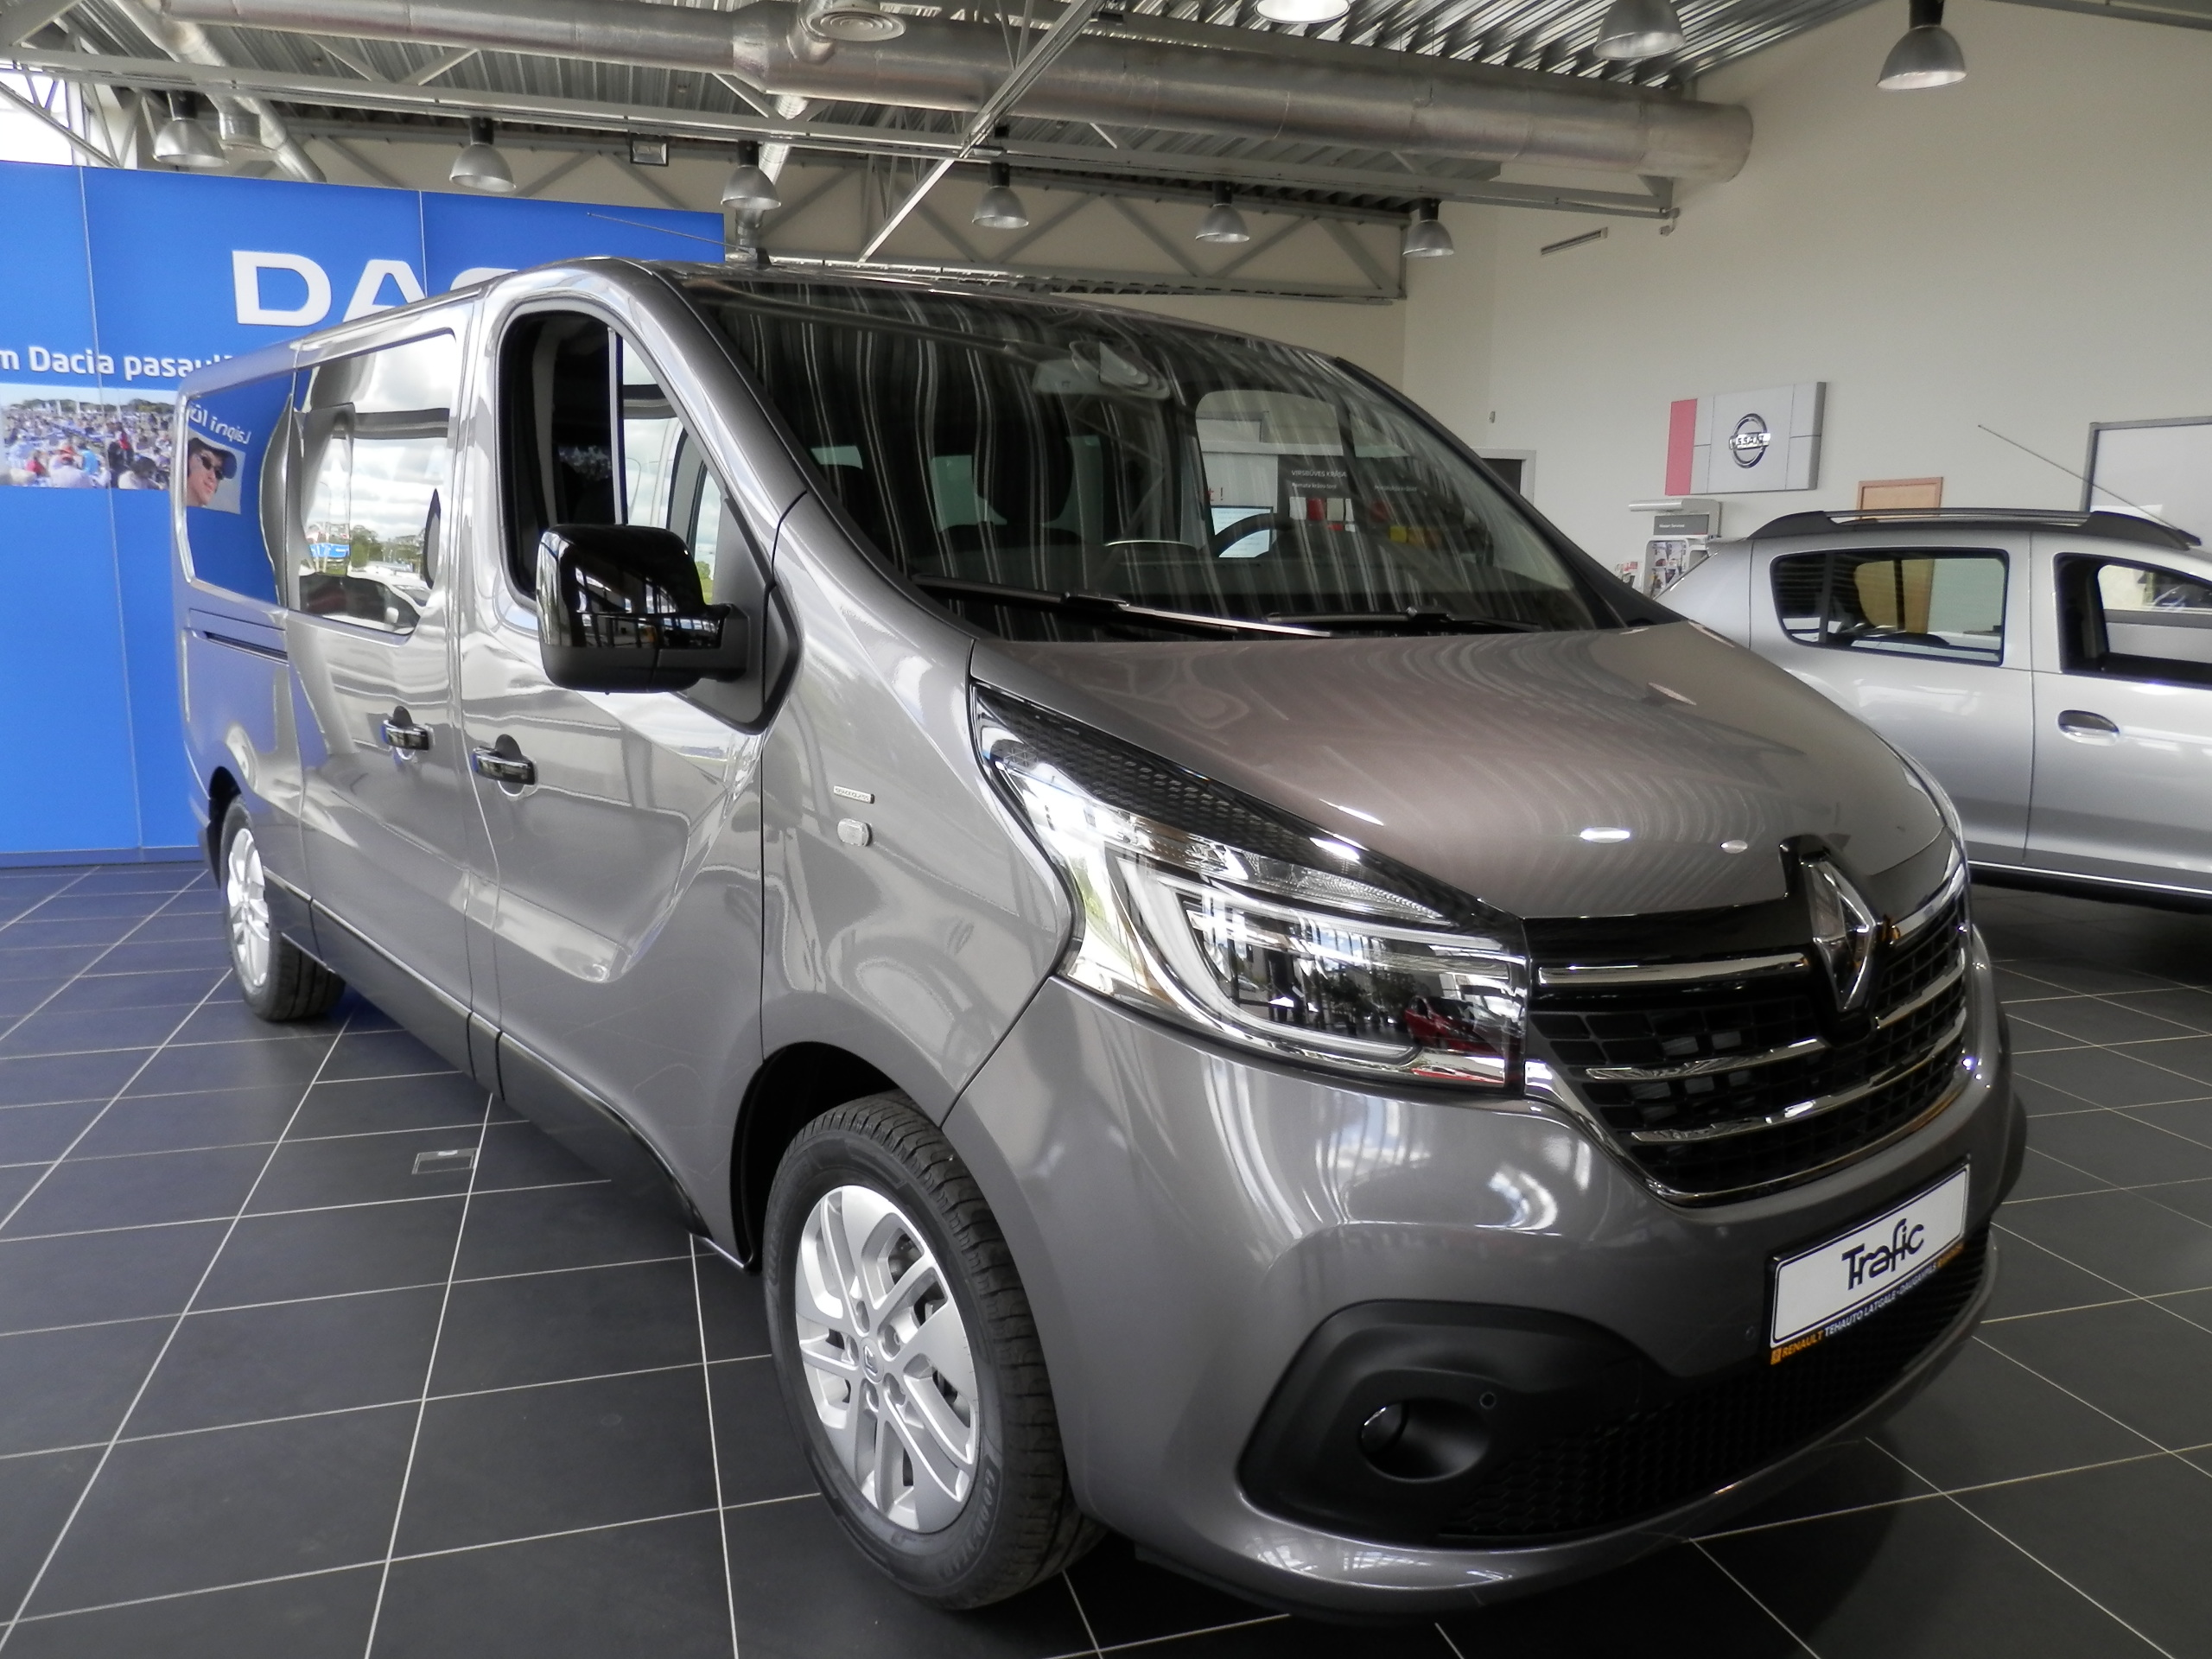 Renault Trafic 2.0dCi 145 EDC 6A/T 2WD SpaceClass